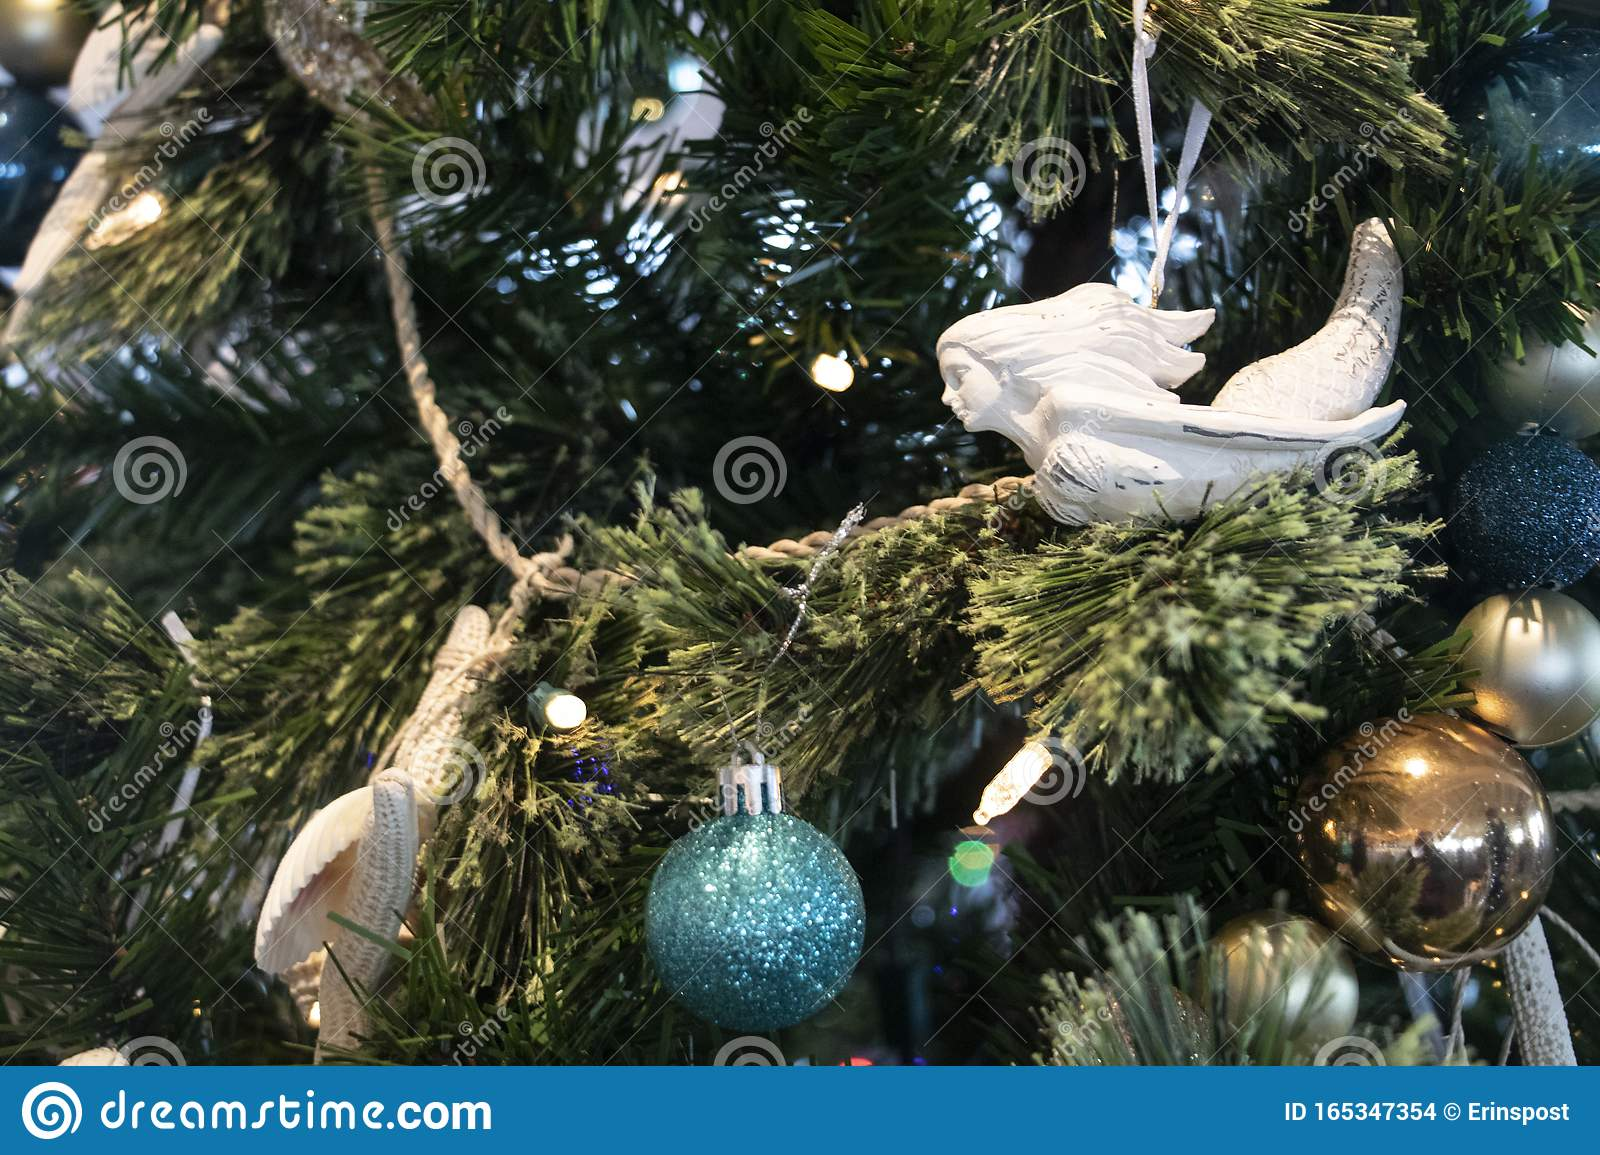 Mermaid In The Sea Christmas Tree Detail Stock Photo Image Of Evokes Solver 165347354